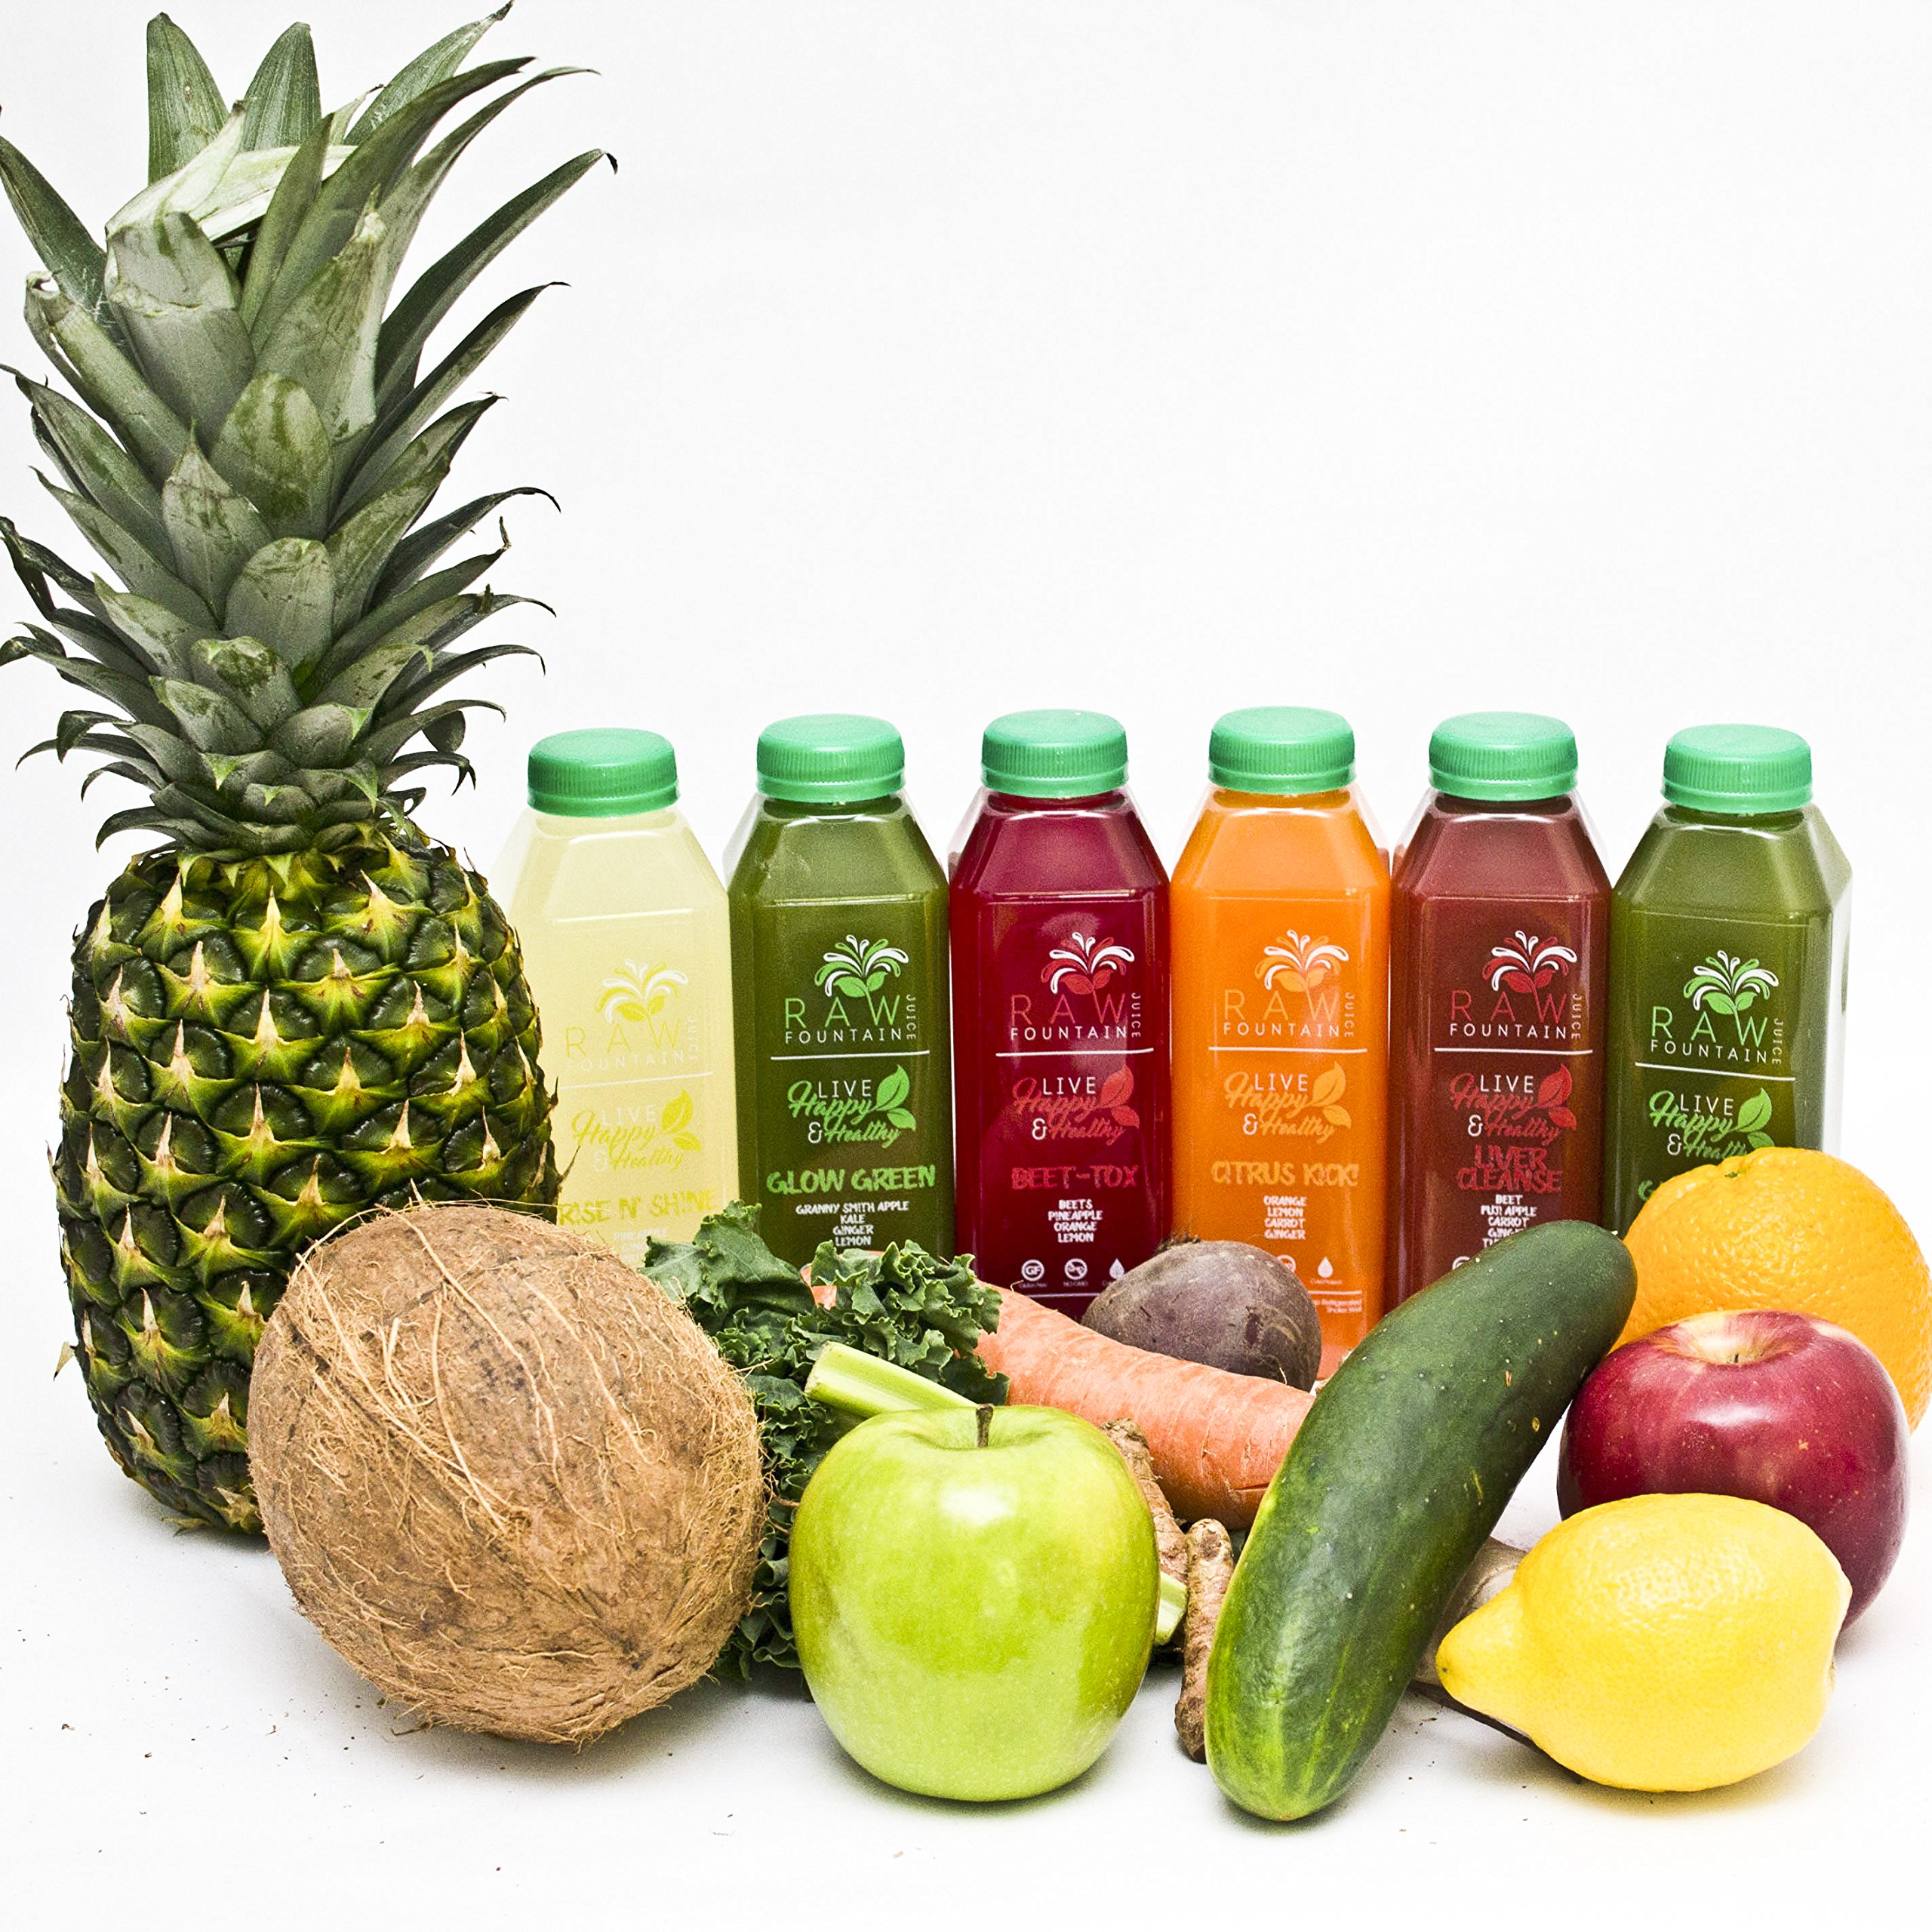 7 Day Juice Cleanse by Raw Fountain Juice - 100% Fresh Natural Organic Raw Vegetable & Fruit Juices - Detox Your Body in a Healthy & Tasty Way! - 42 Bottles (16 fl oz) + 7 BONUS Ginger Shots by Raw Threads (Image #8)